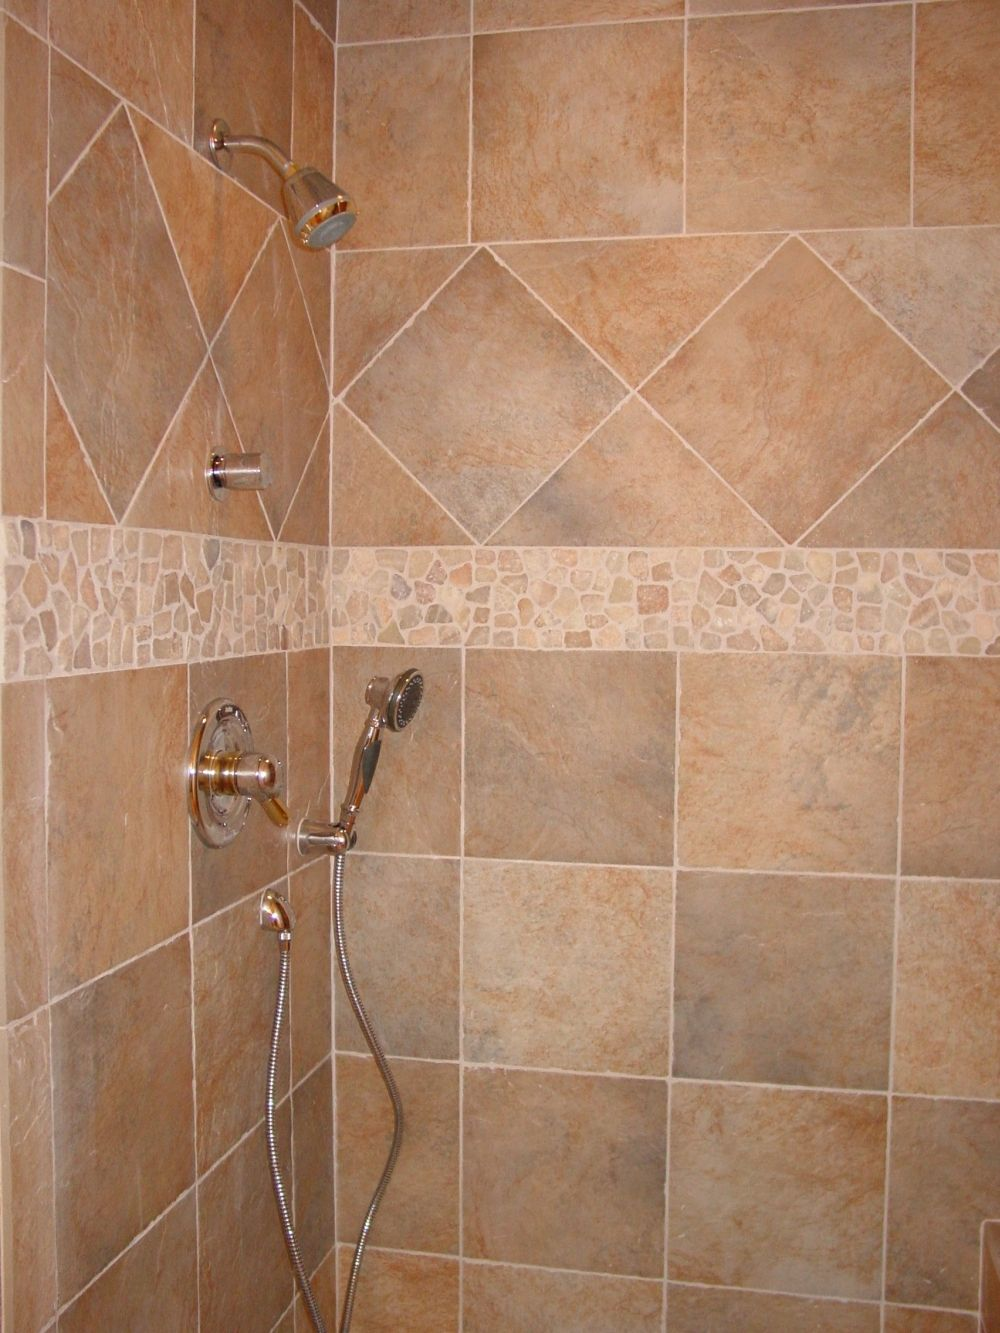 showers | Pebble Shower Floors for Tiled Showers - How-to Install ...